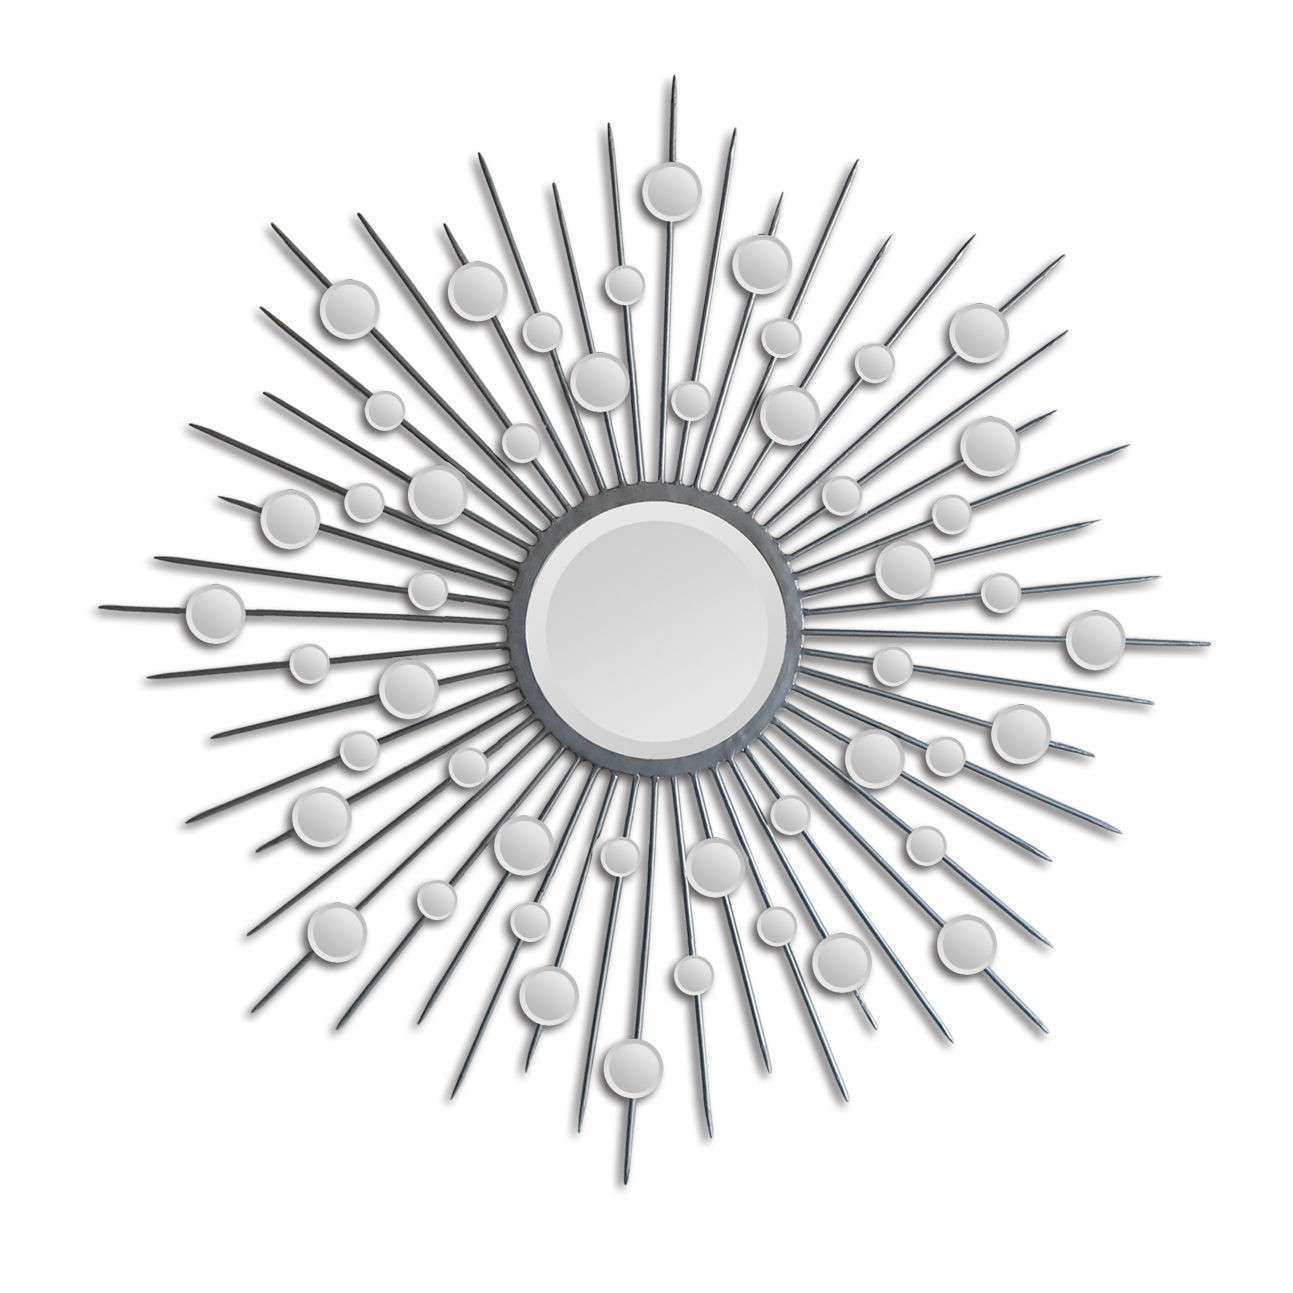 Sunburst Mirror Wall Decor New Art Designs Silver